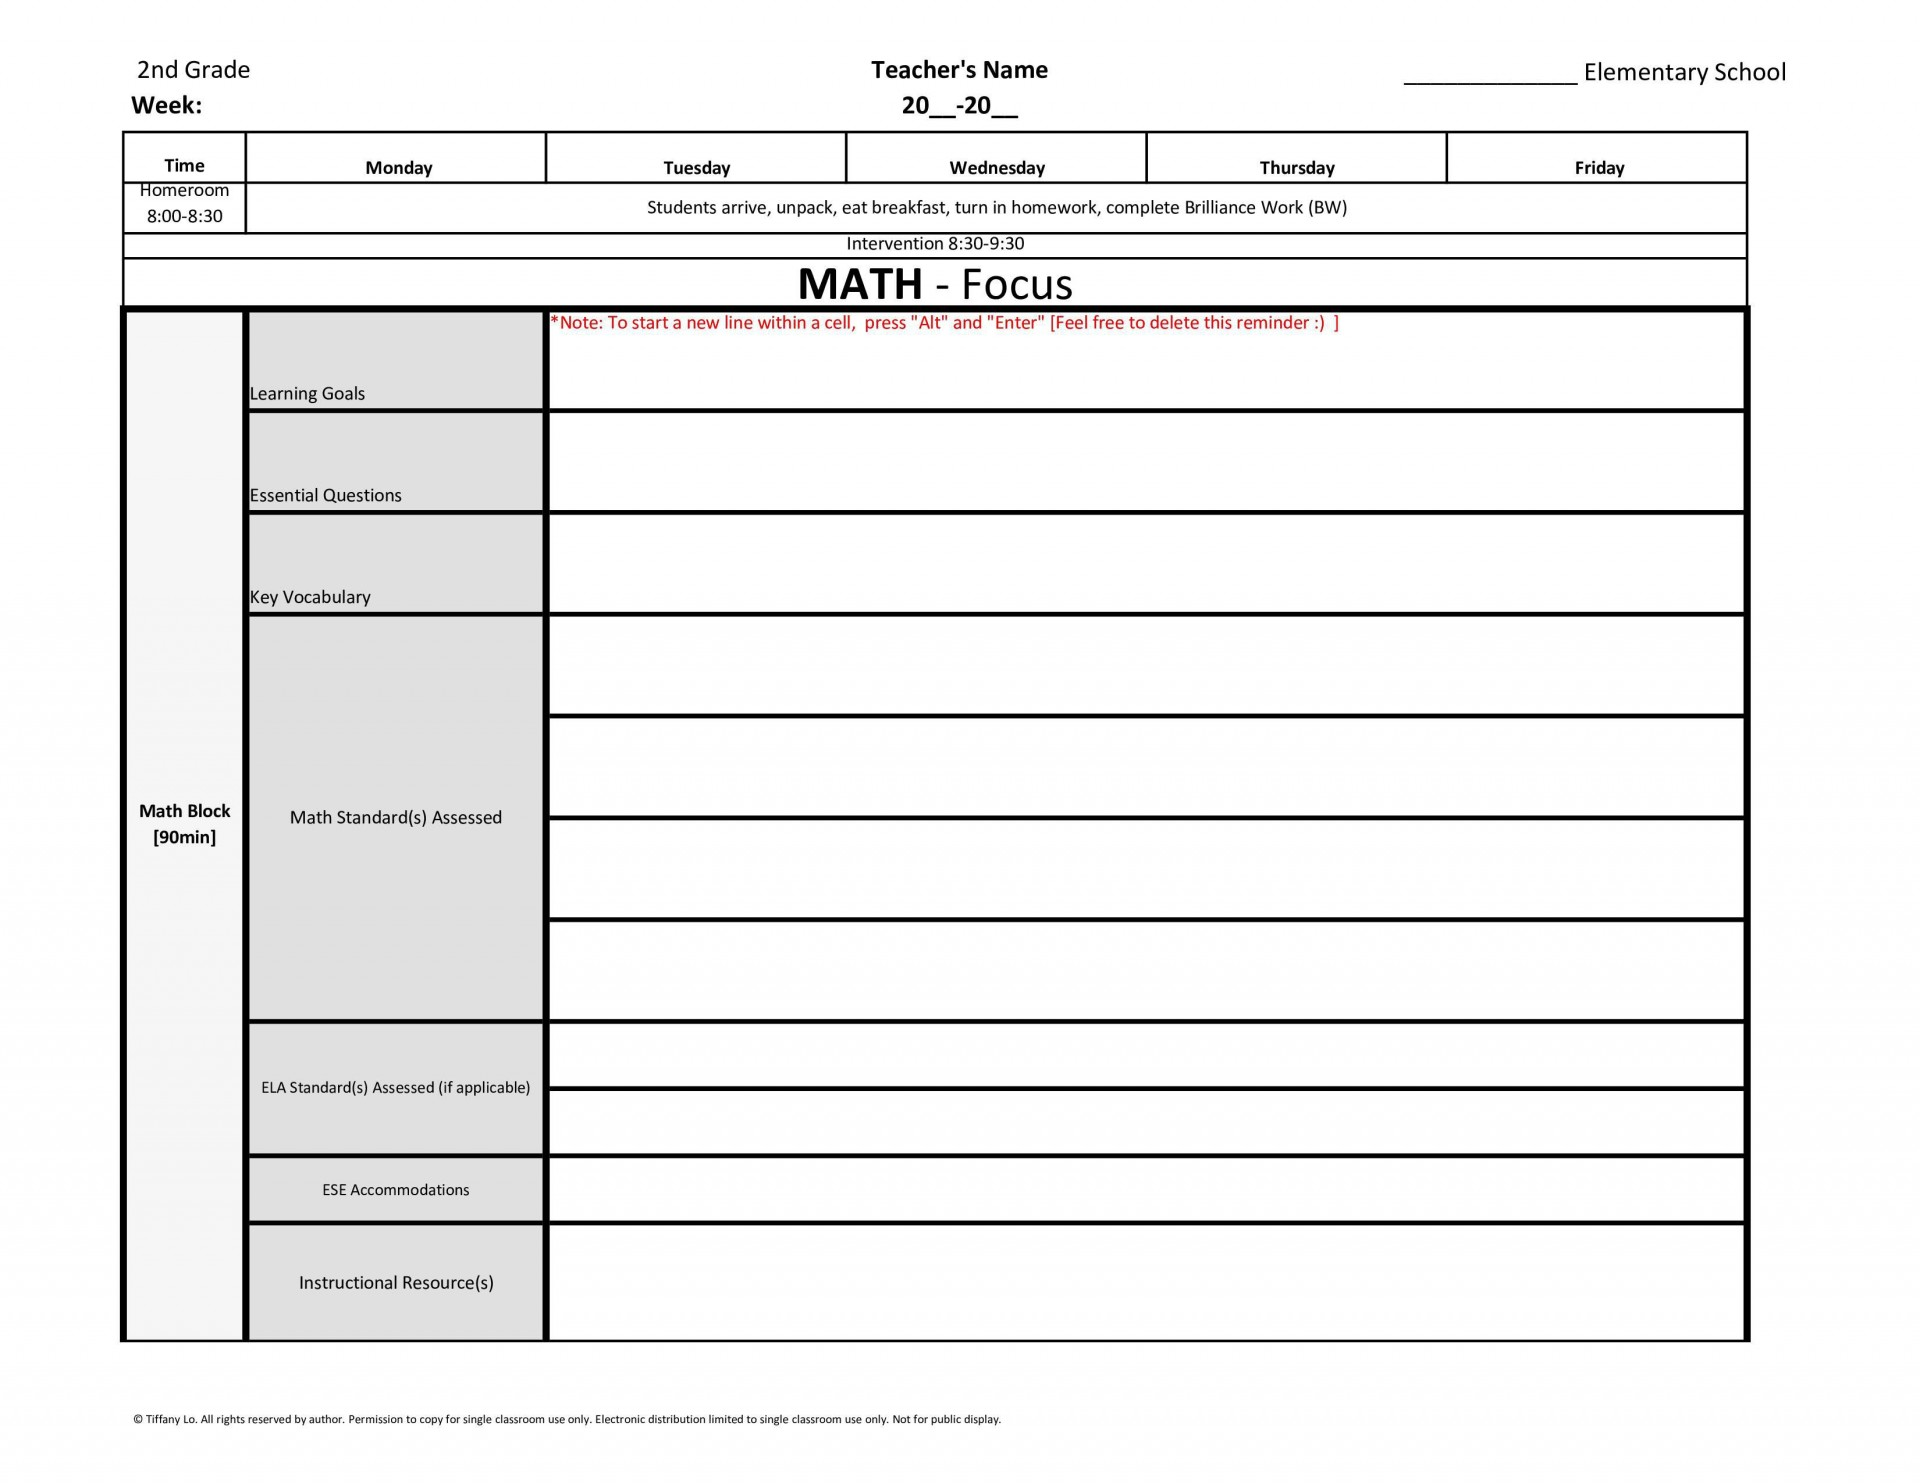 001 Marvelou Elementary School Lesson Plan Template High Definition  Format Science Teacher1920